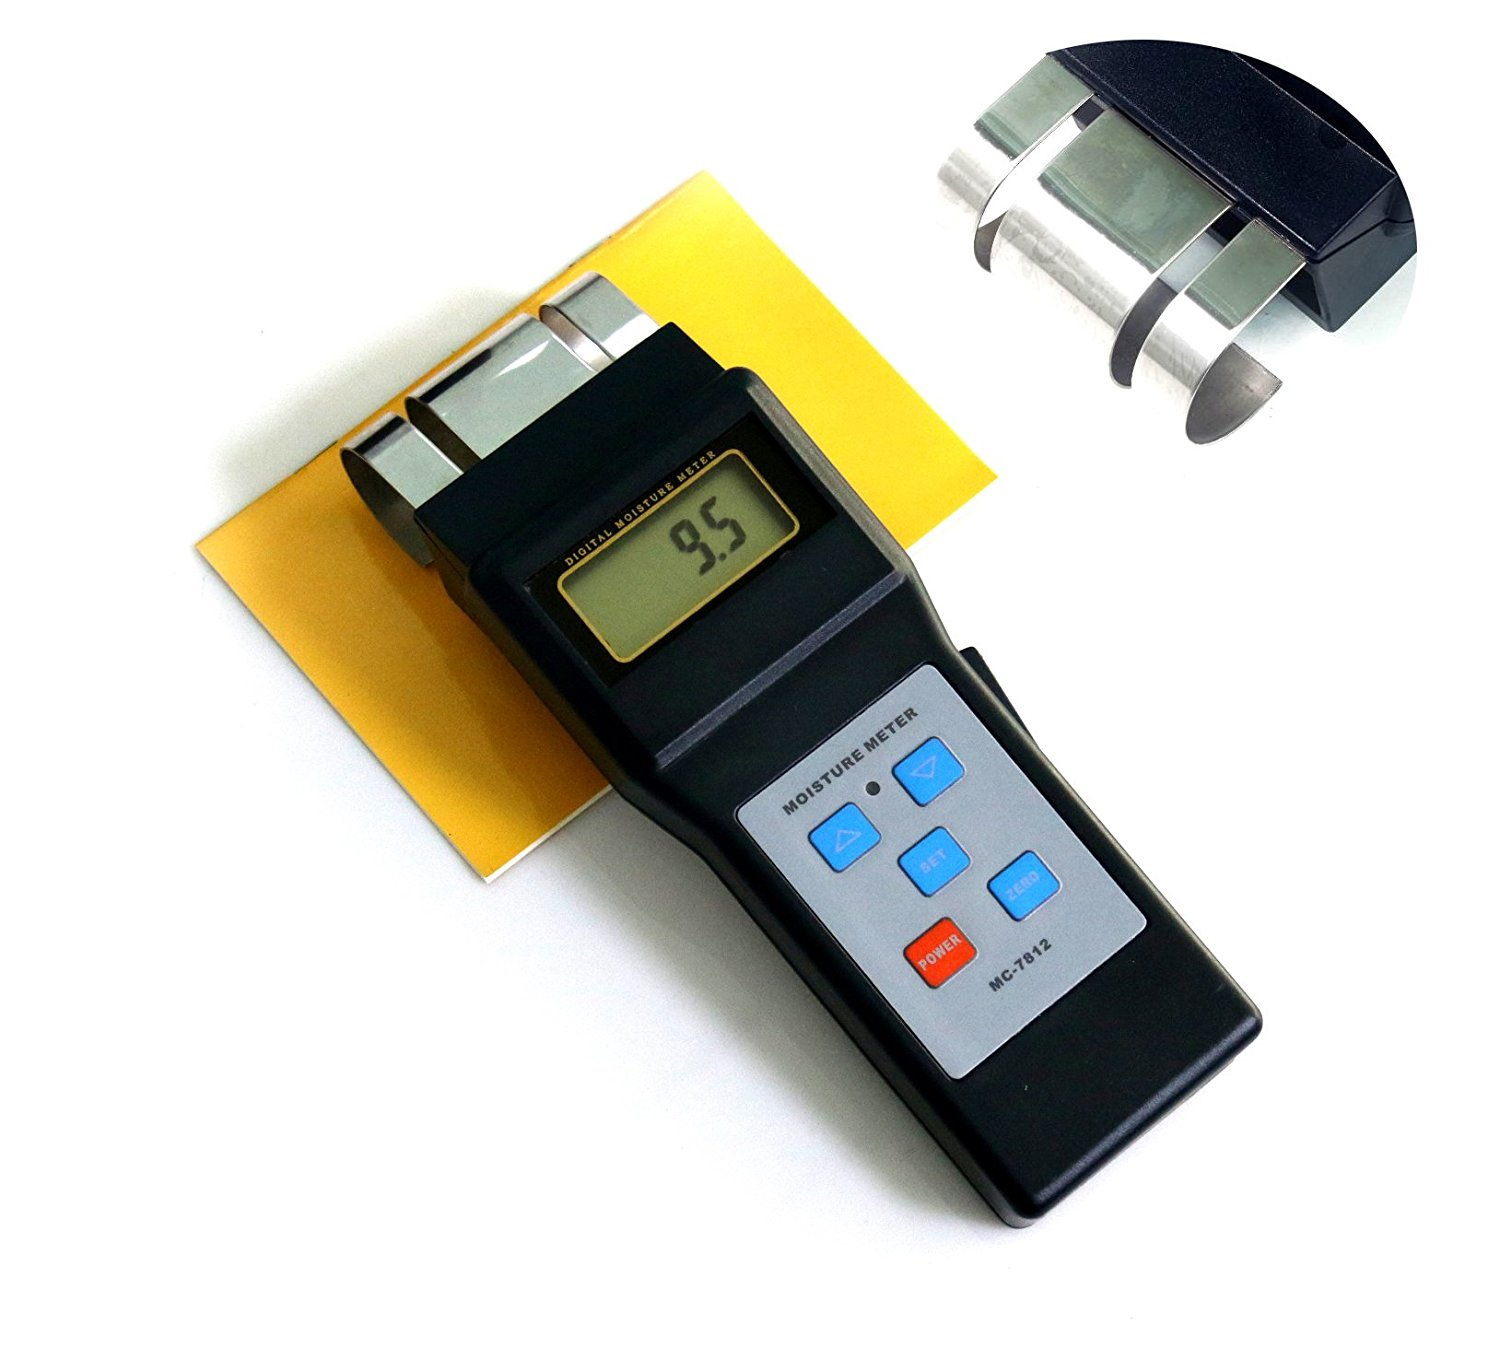 BYQTEC MC-7812 Digital Search Type Electromagnetic Induction Wood Moisture Meter with LCD Display